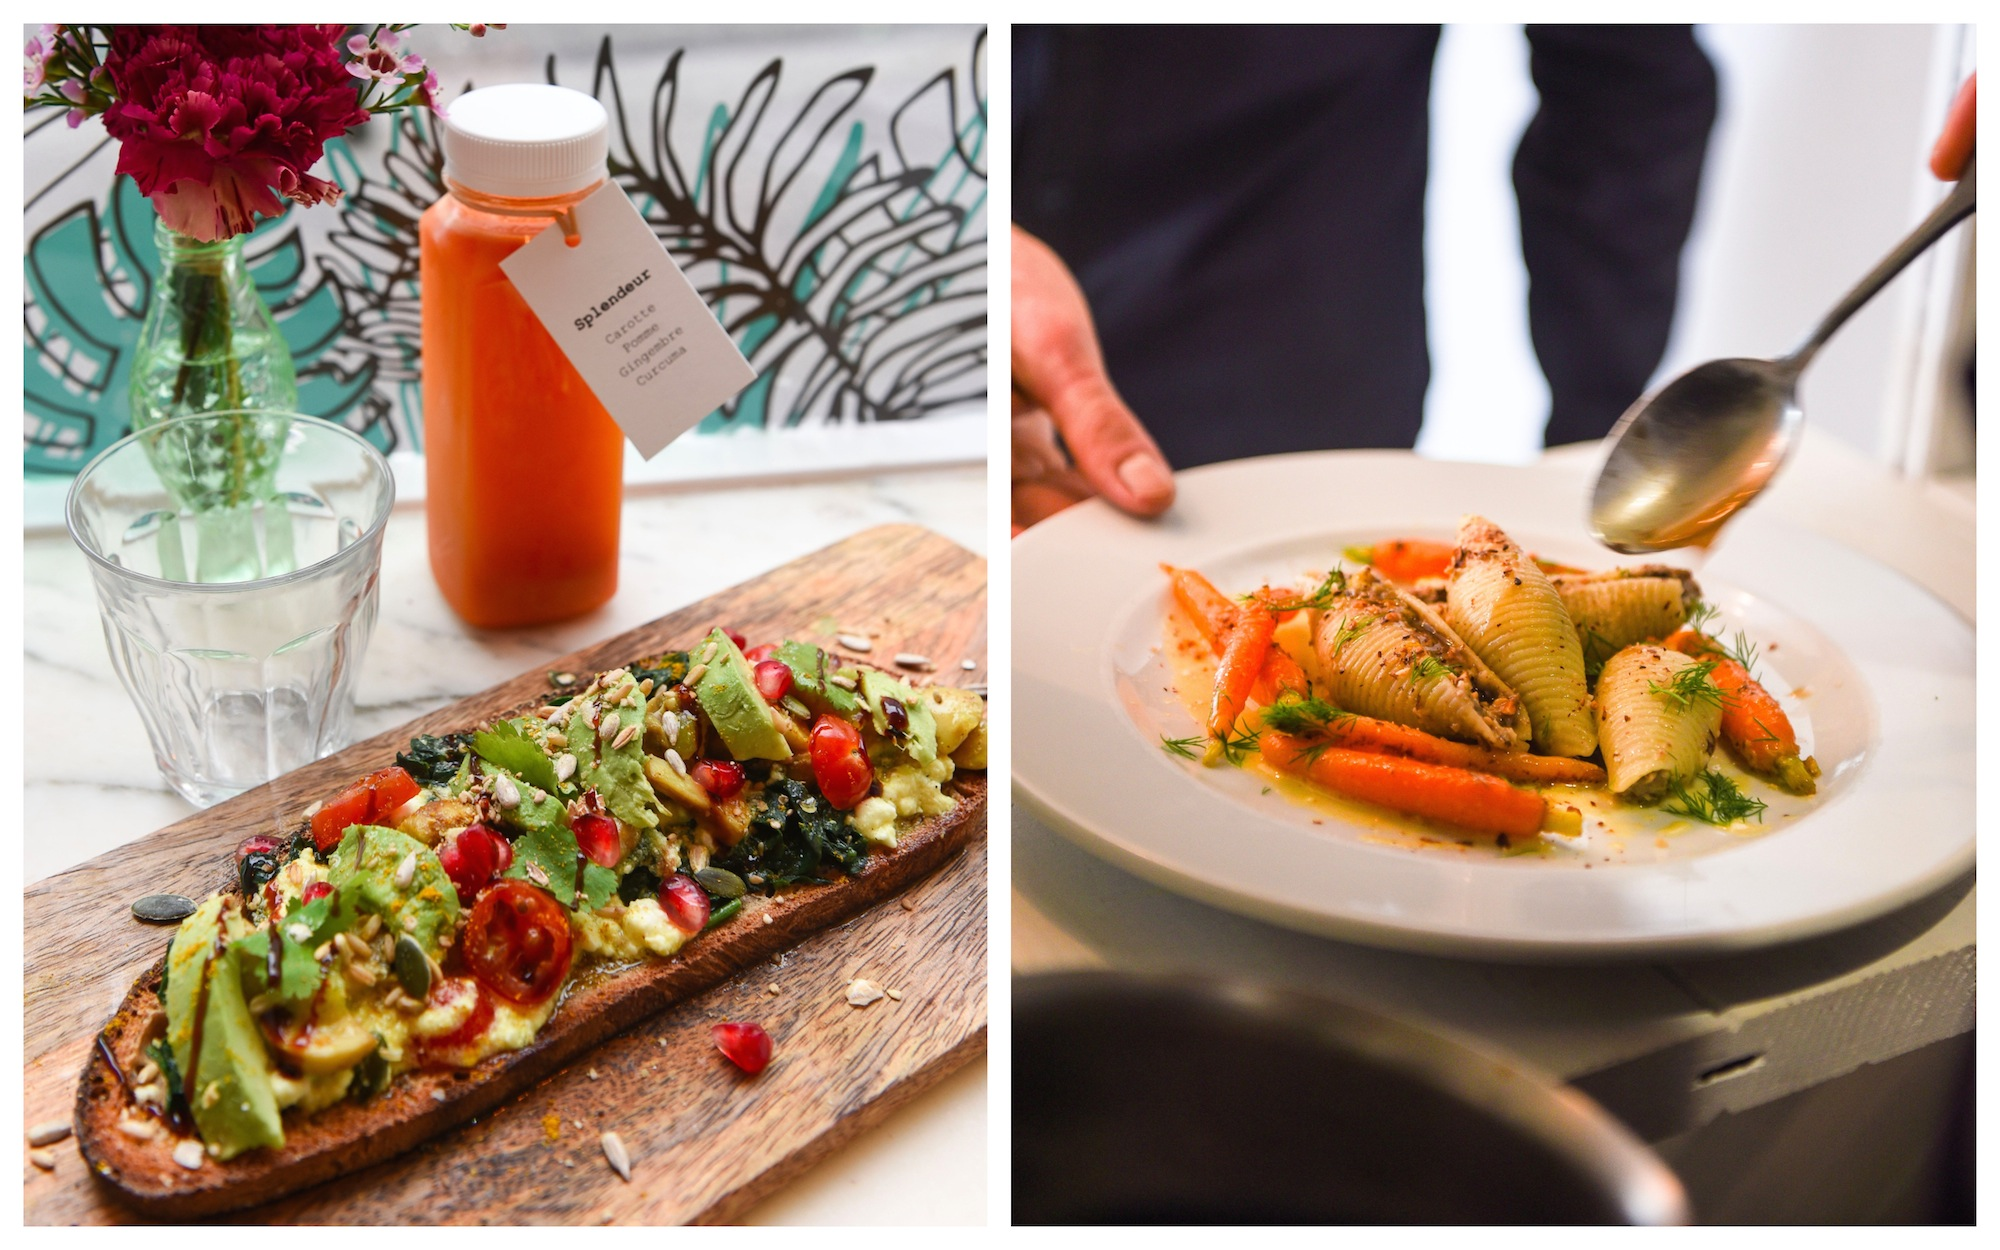 Vegan avocado toast and detox juice at vegan restaurant Abattoir Végétal (left) and vegetable hotpot (right).